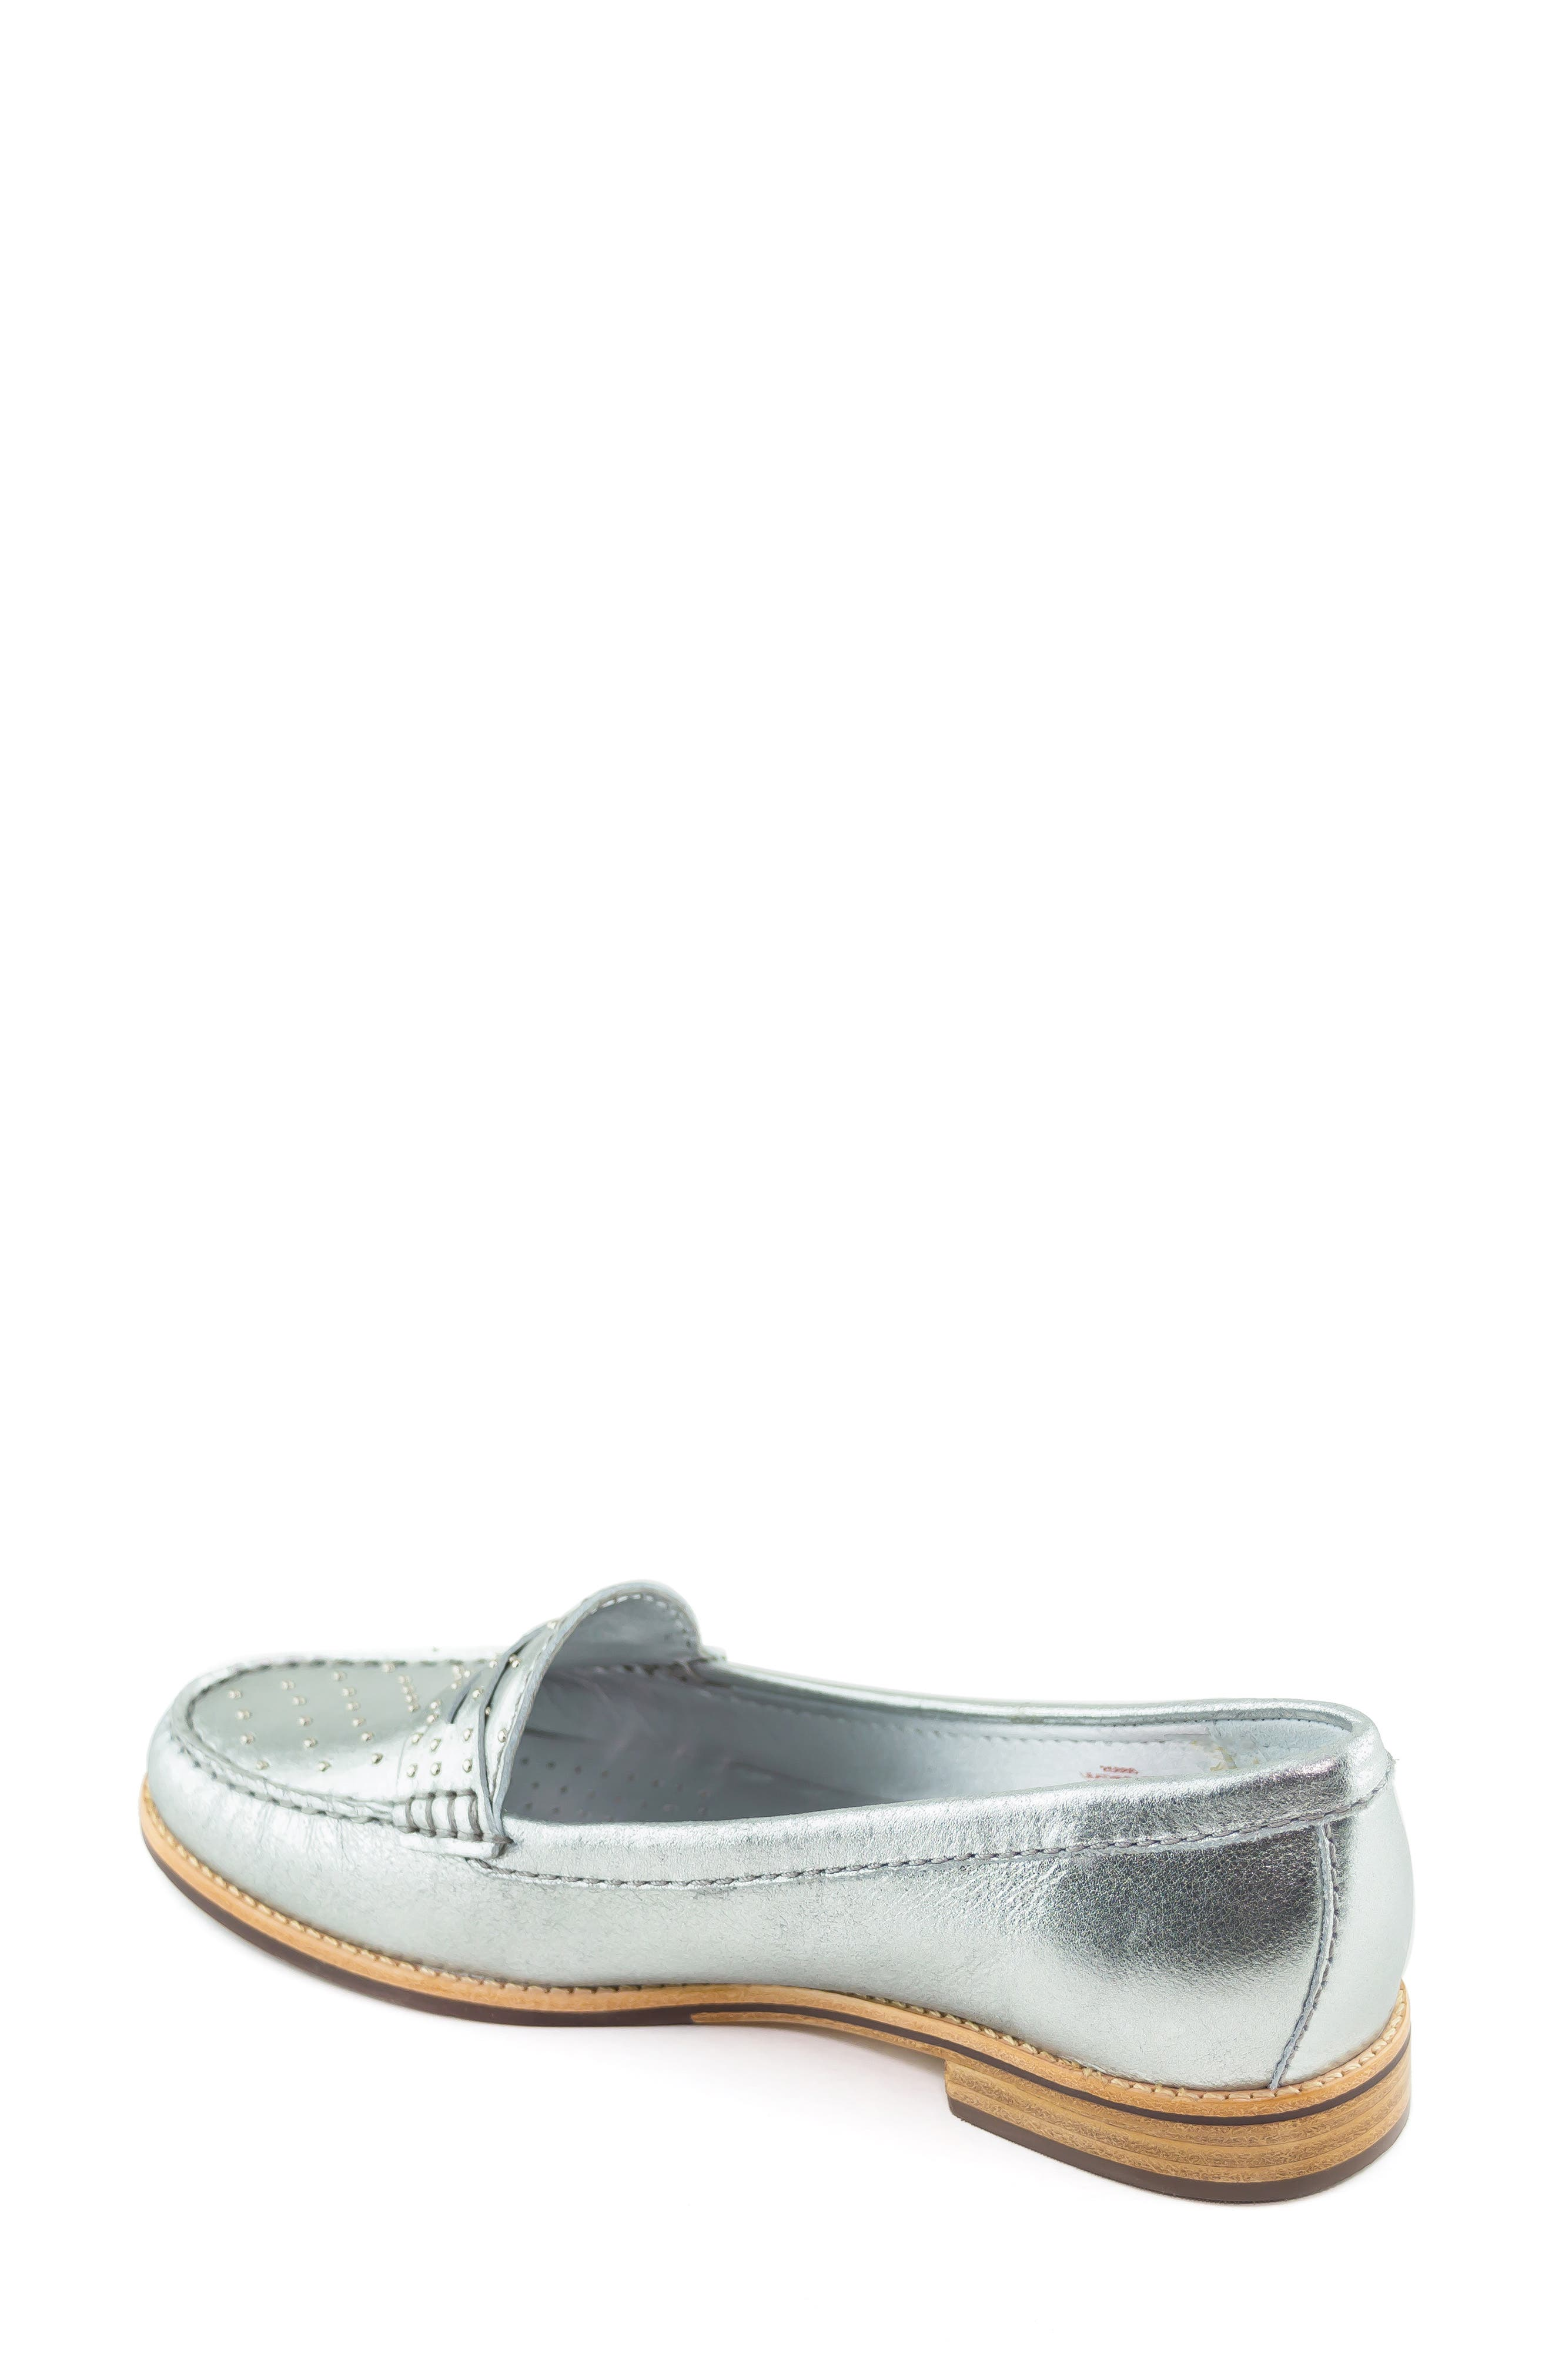 MARC JOSEPH NEW YORK, East Village III Studded Loafer, Alternate thumbnail 2, color, SILVER LEATHER